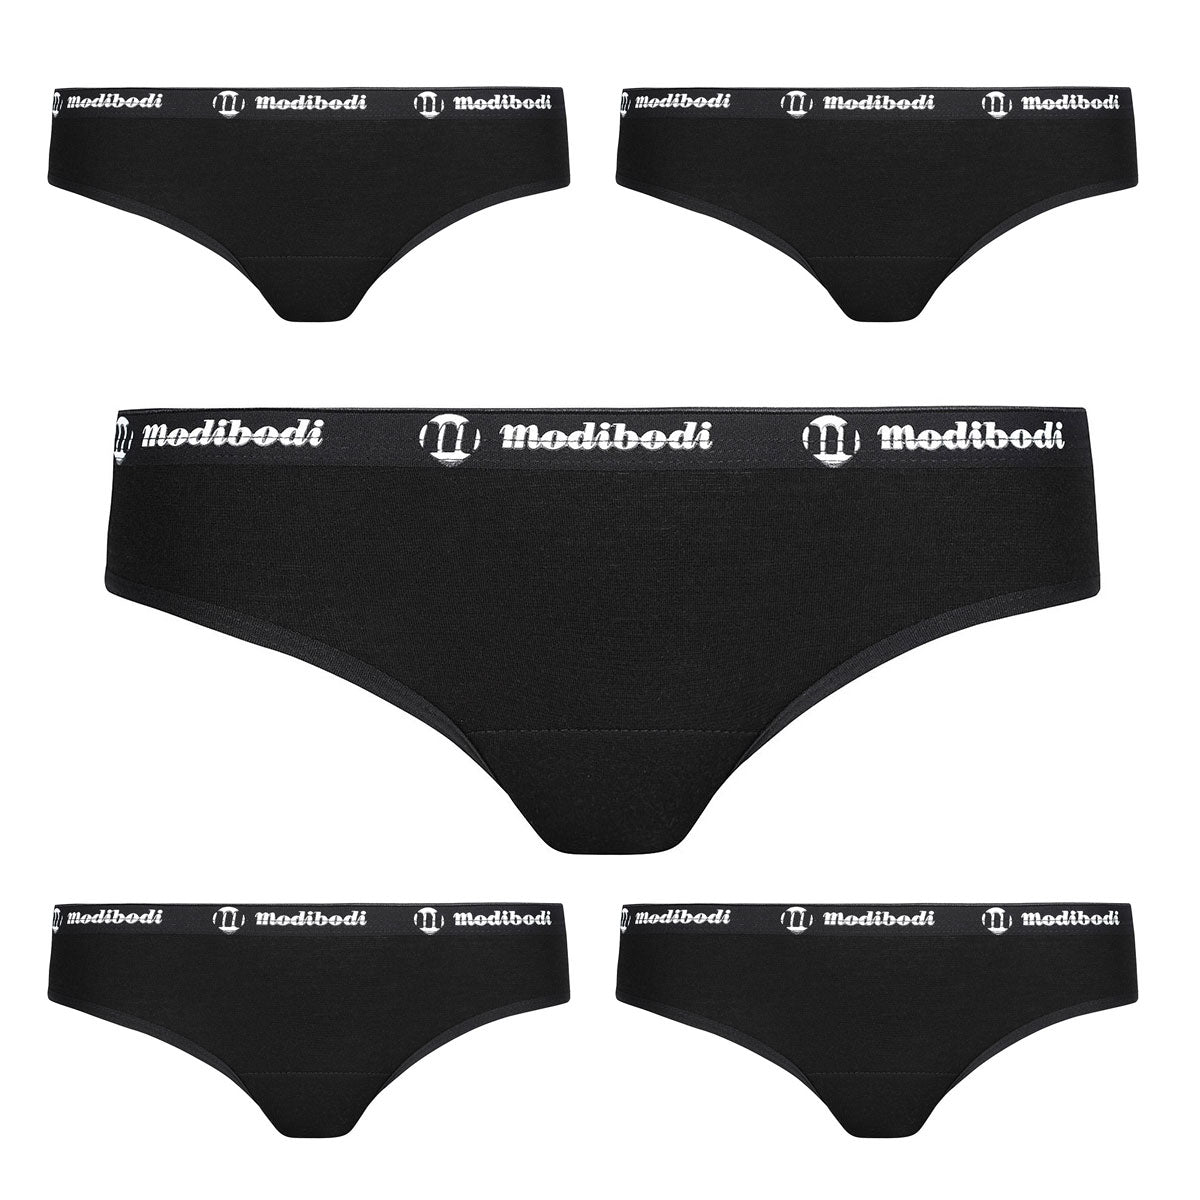 Modibodi Active Brief 5 Pack Black Light-Moderate